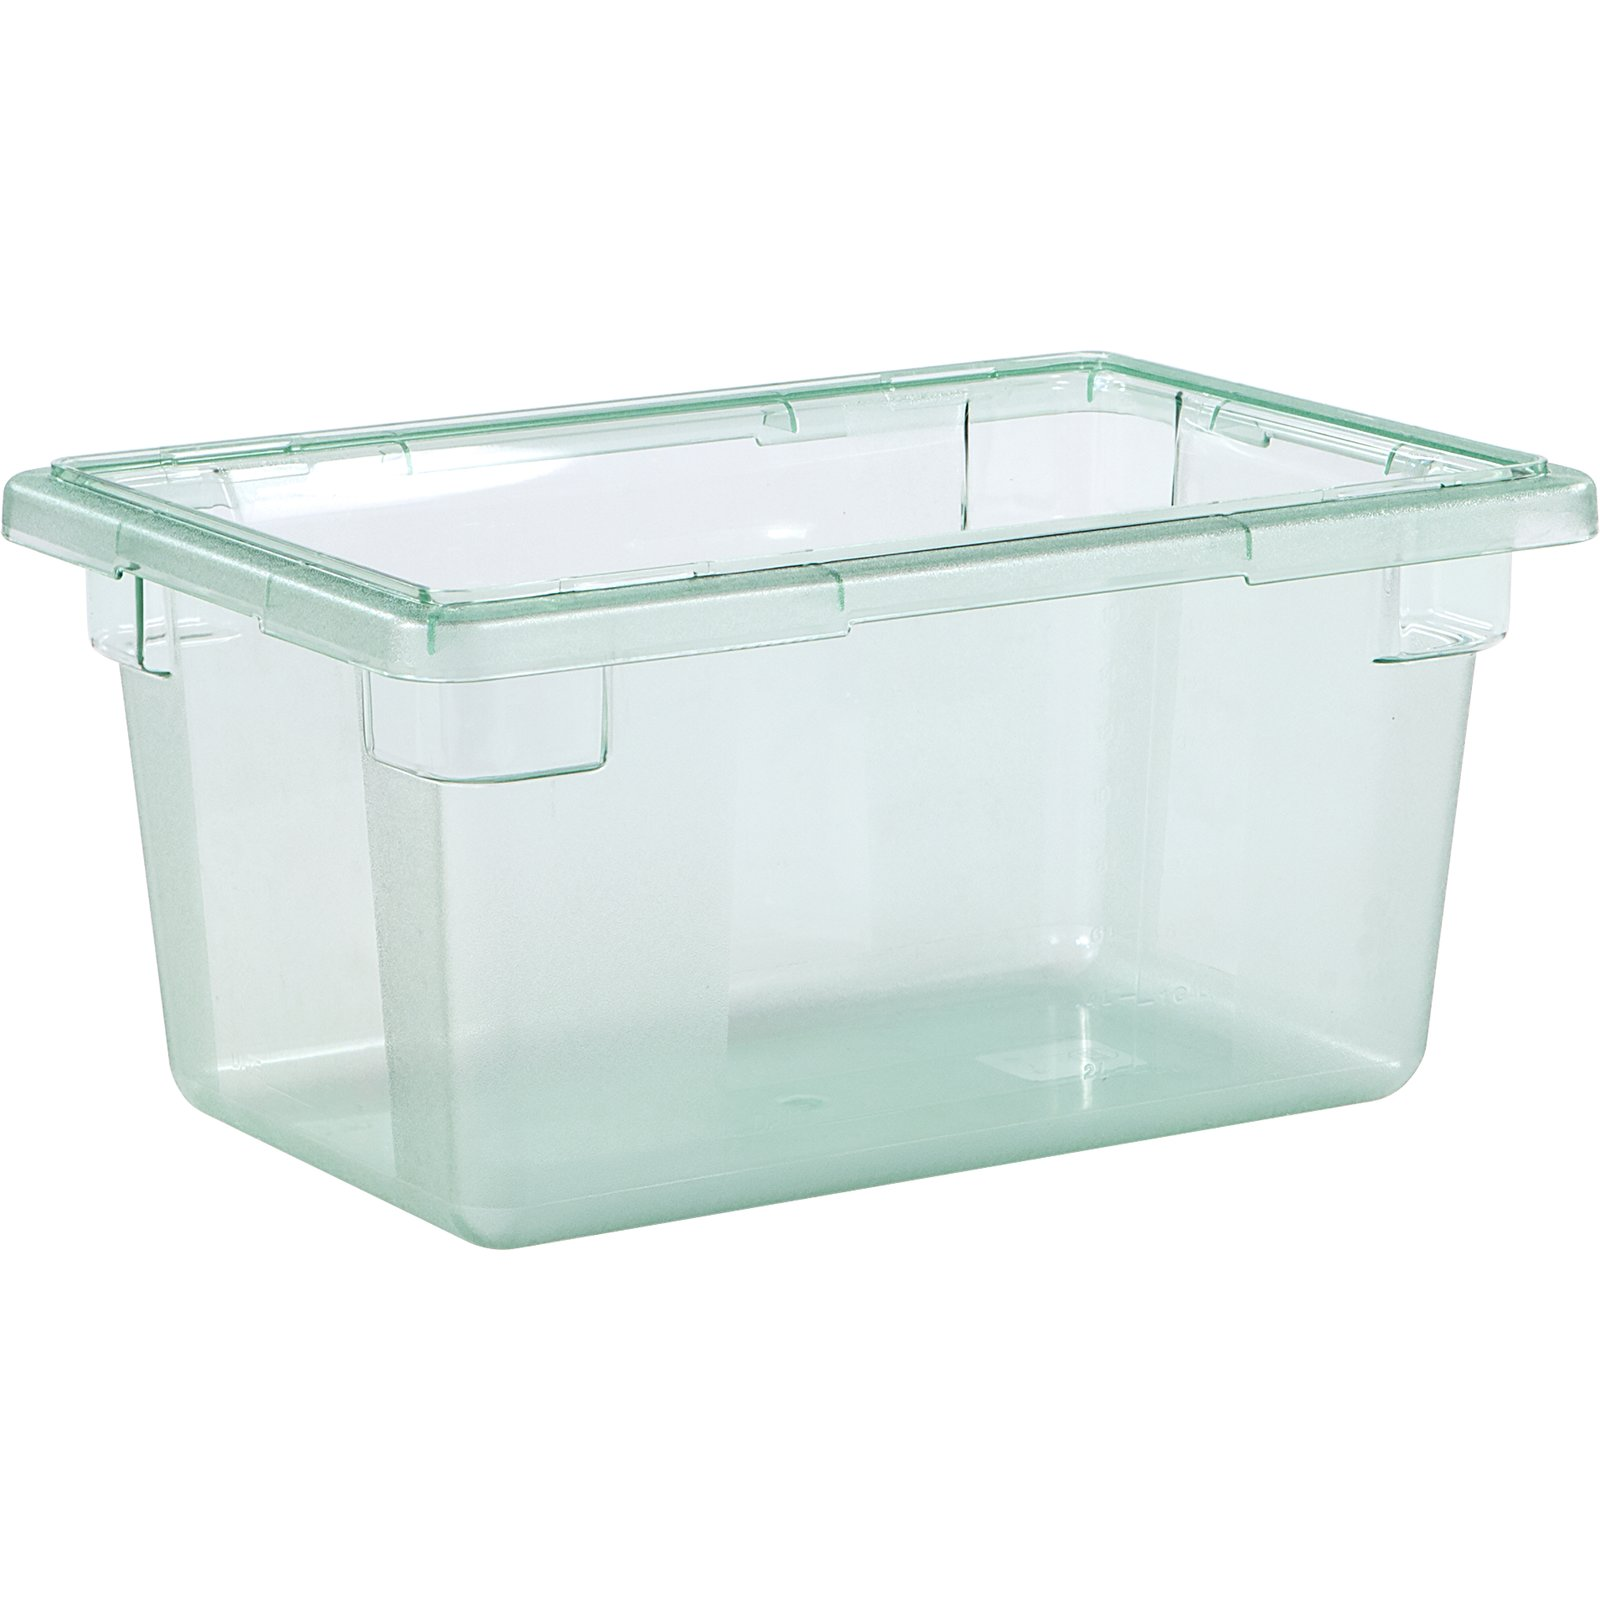 10612C09 StorPlus Color Coded Food Box Storage Container 5 Gallon